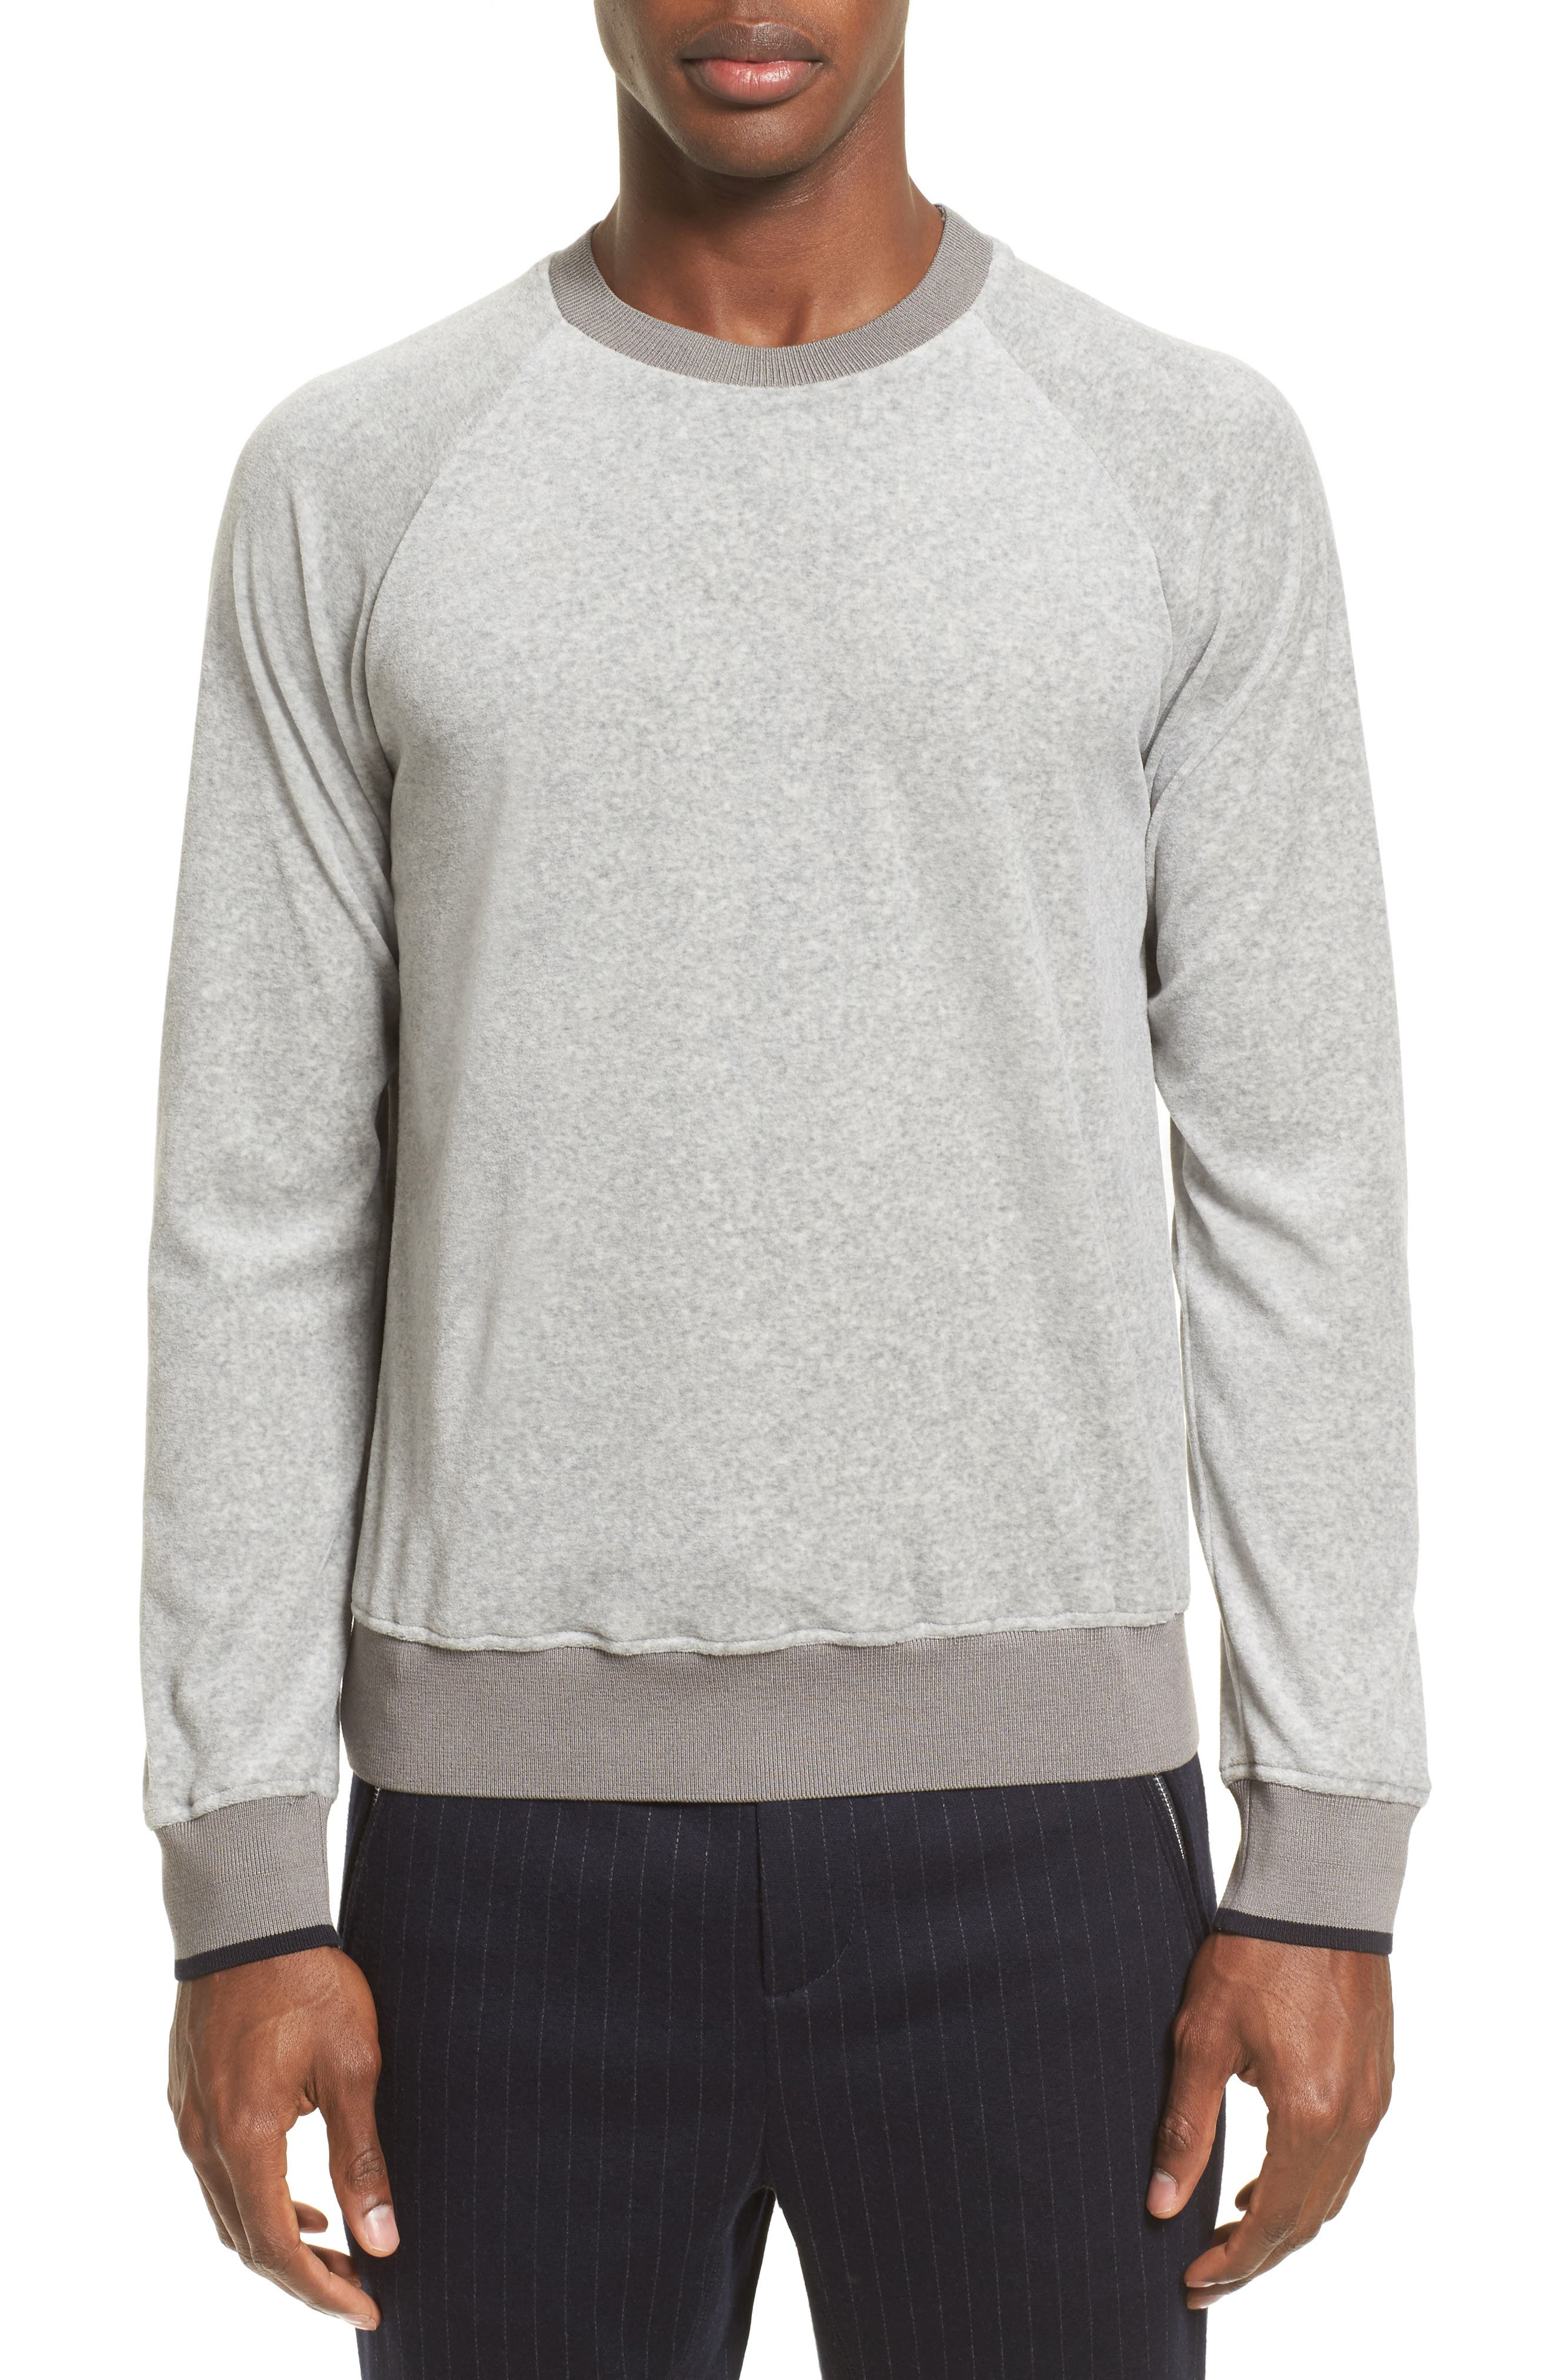 Velour Sweatshirt,                             Main thumbnail 1, color,                             Light Grey